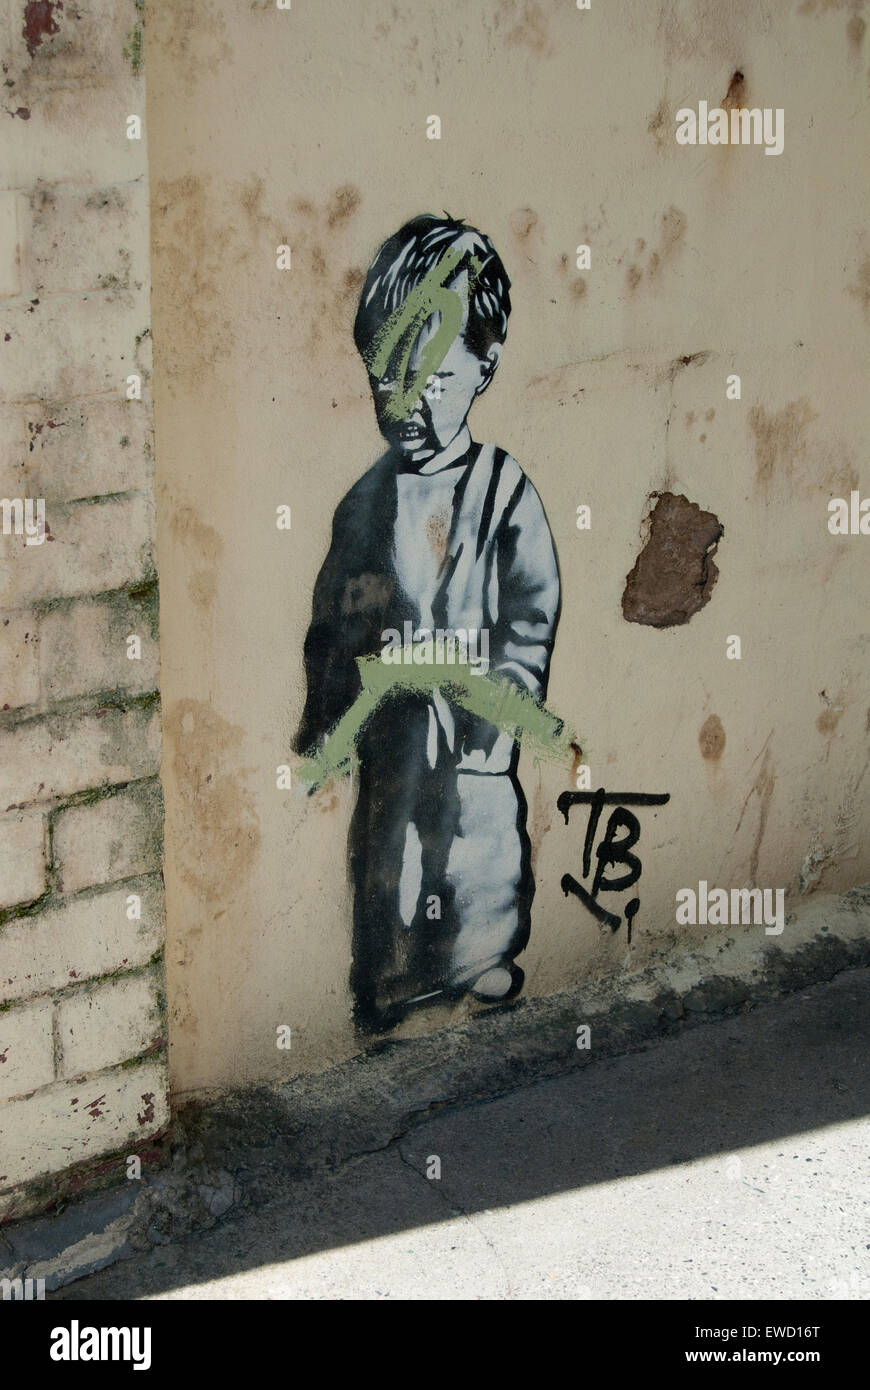 Editorial image of Urban artwork of a small boy possibly by